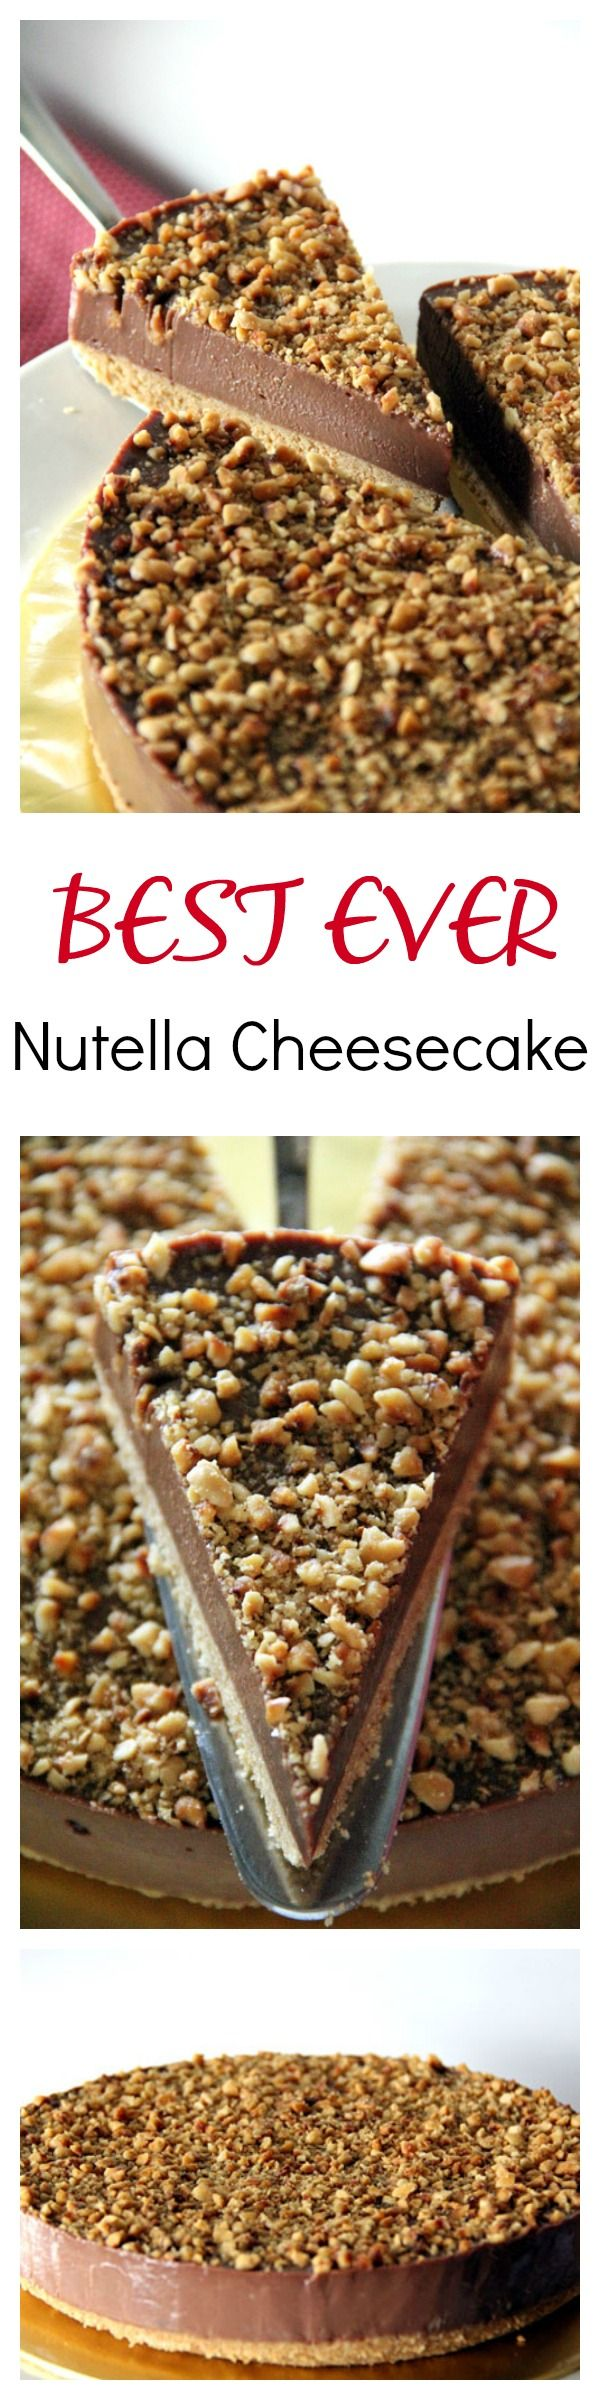 Best-ever NO BAKE Nutella Cheesecake with toasted hazelnut, to-die-for richest and creamiest cheesecake